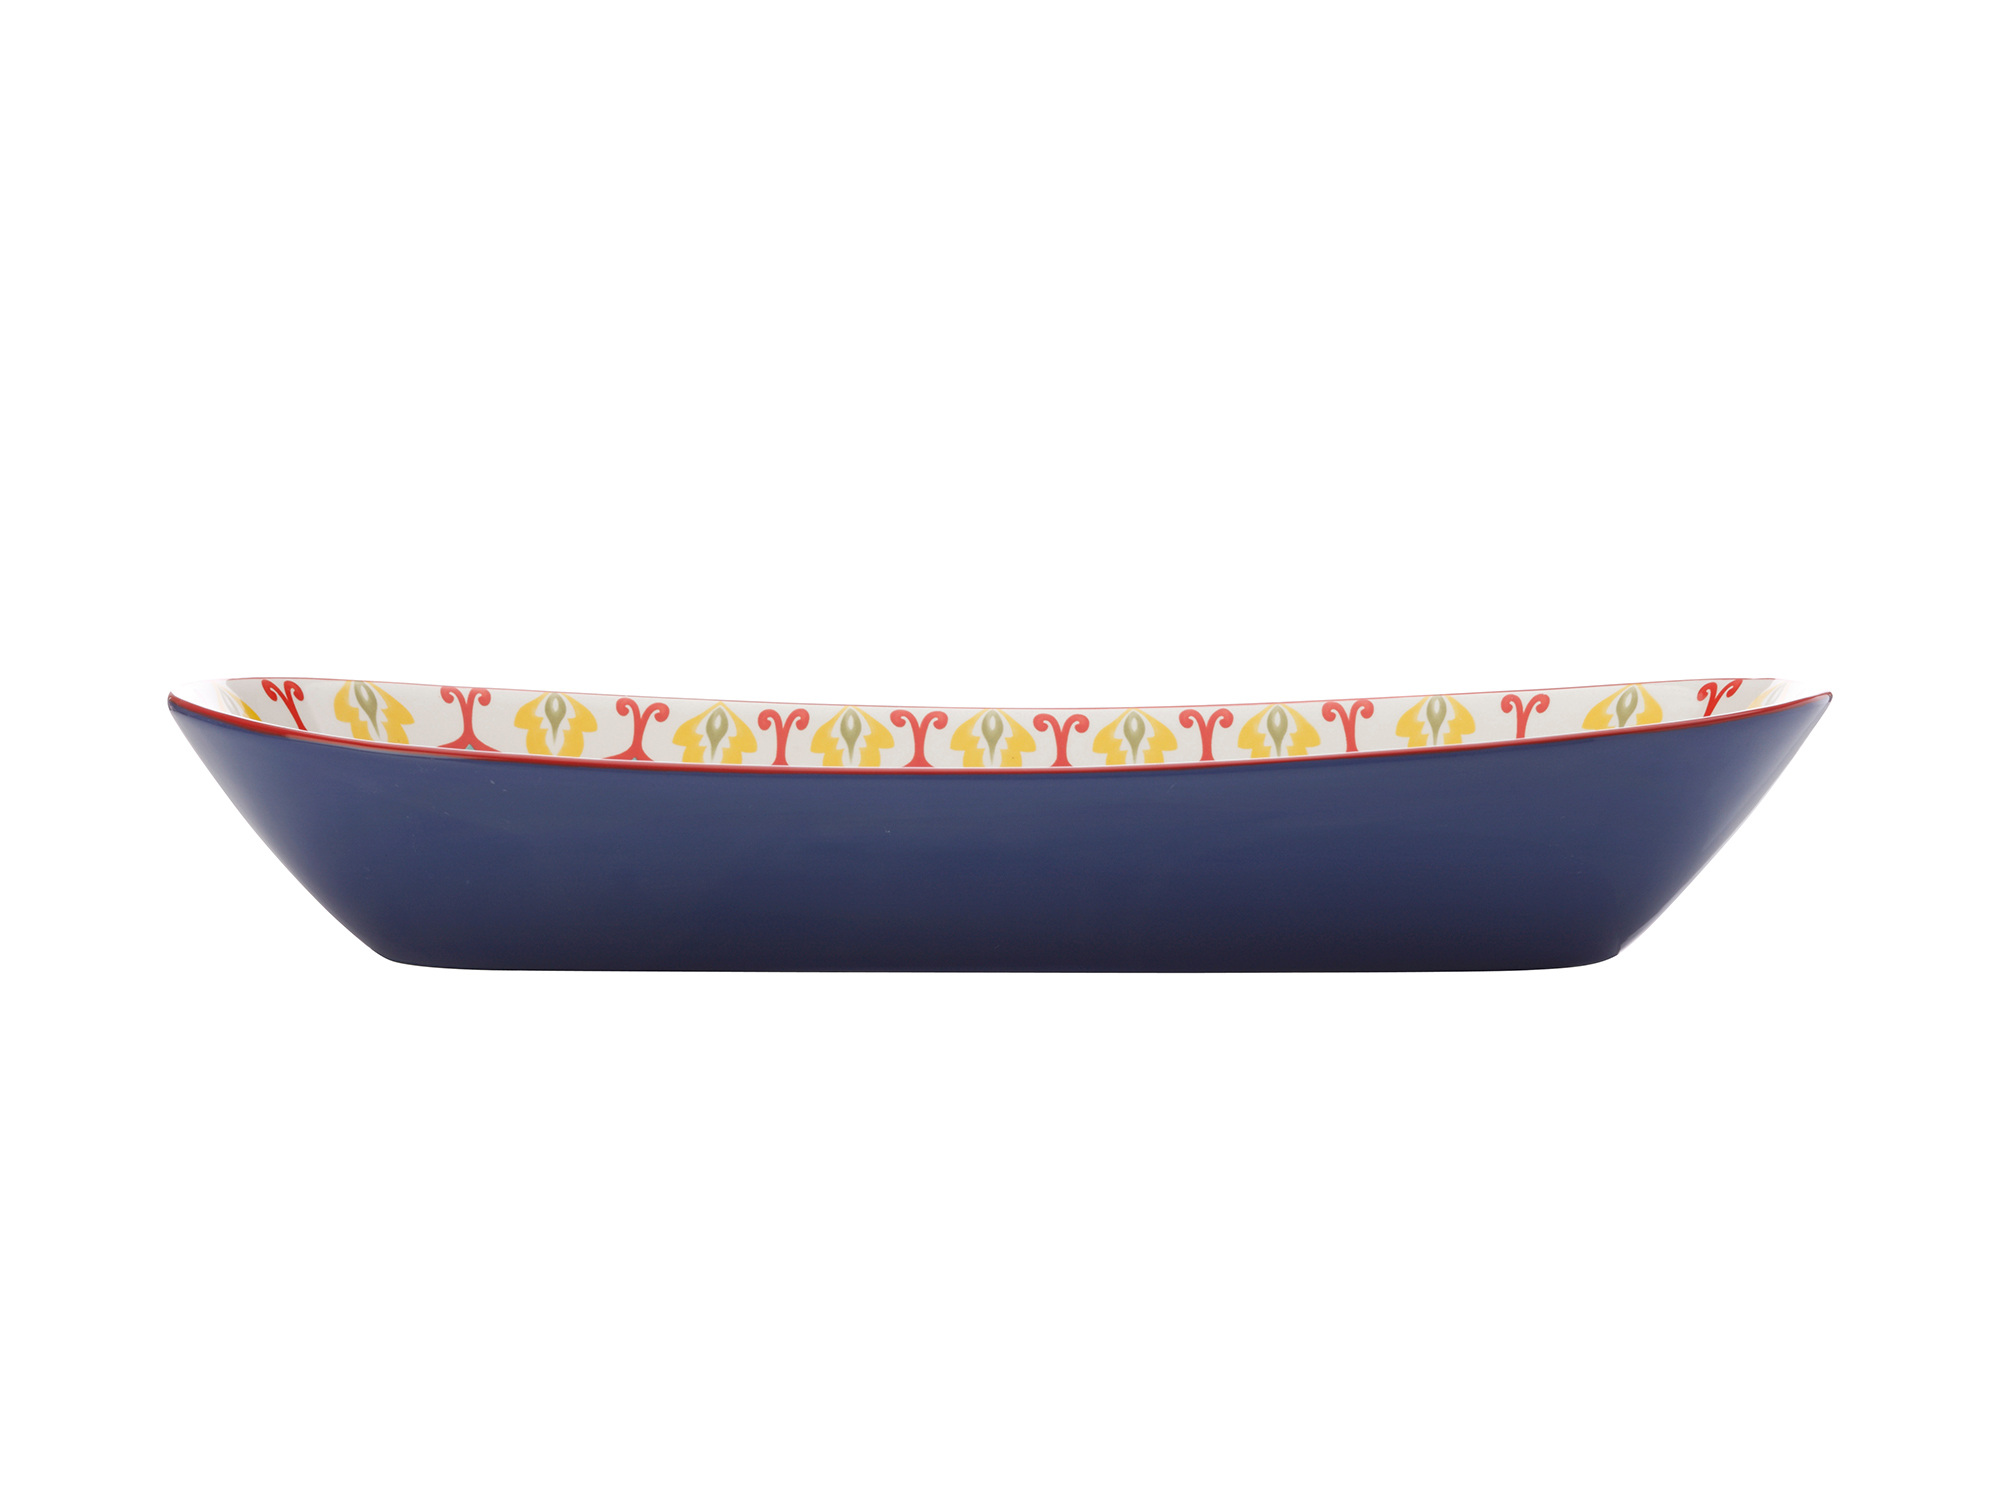 Maxwell & Williams Lanka 43X22Cm Oblong Bowl Gift Boxed